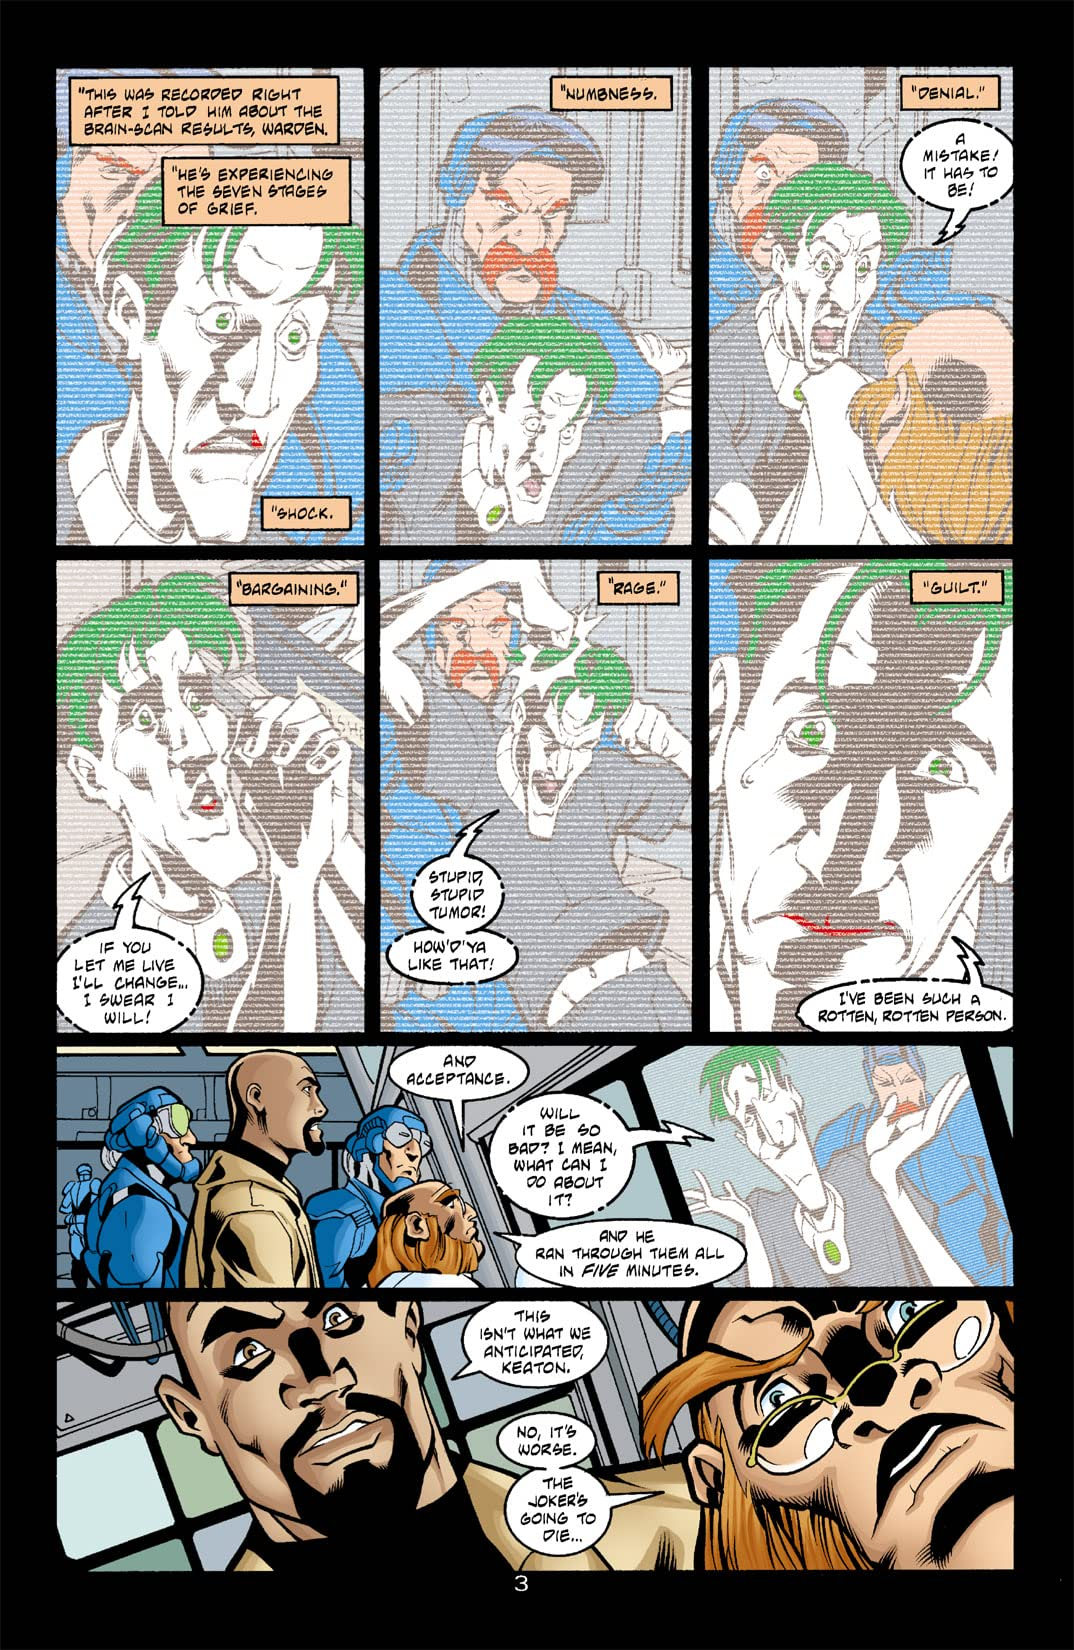 Joker: Last Laugh #1 (of 6)